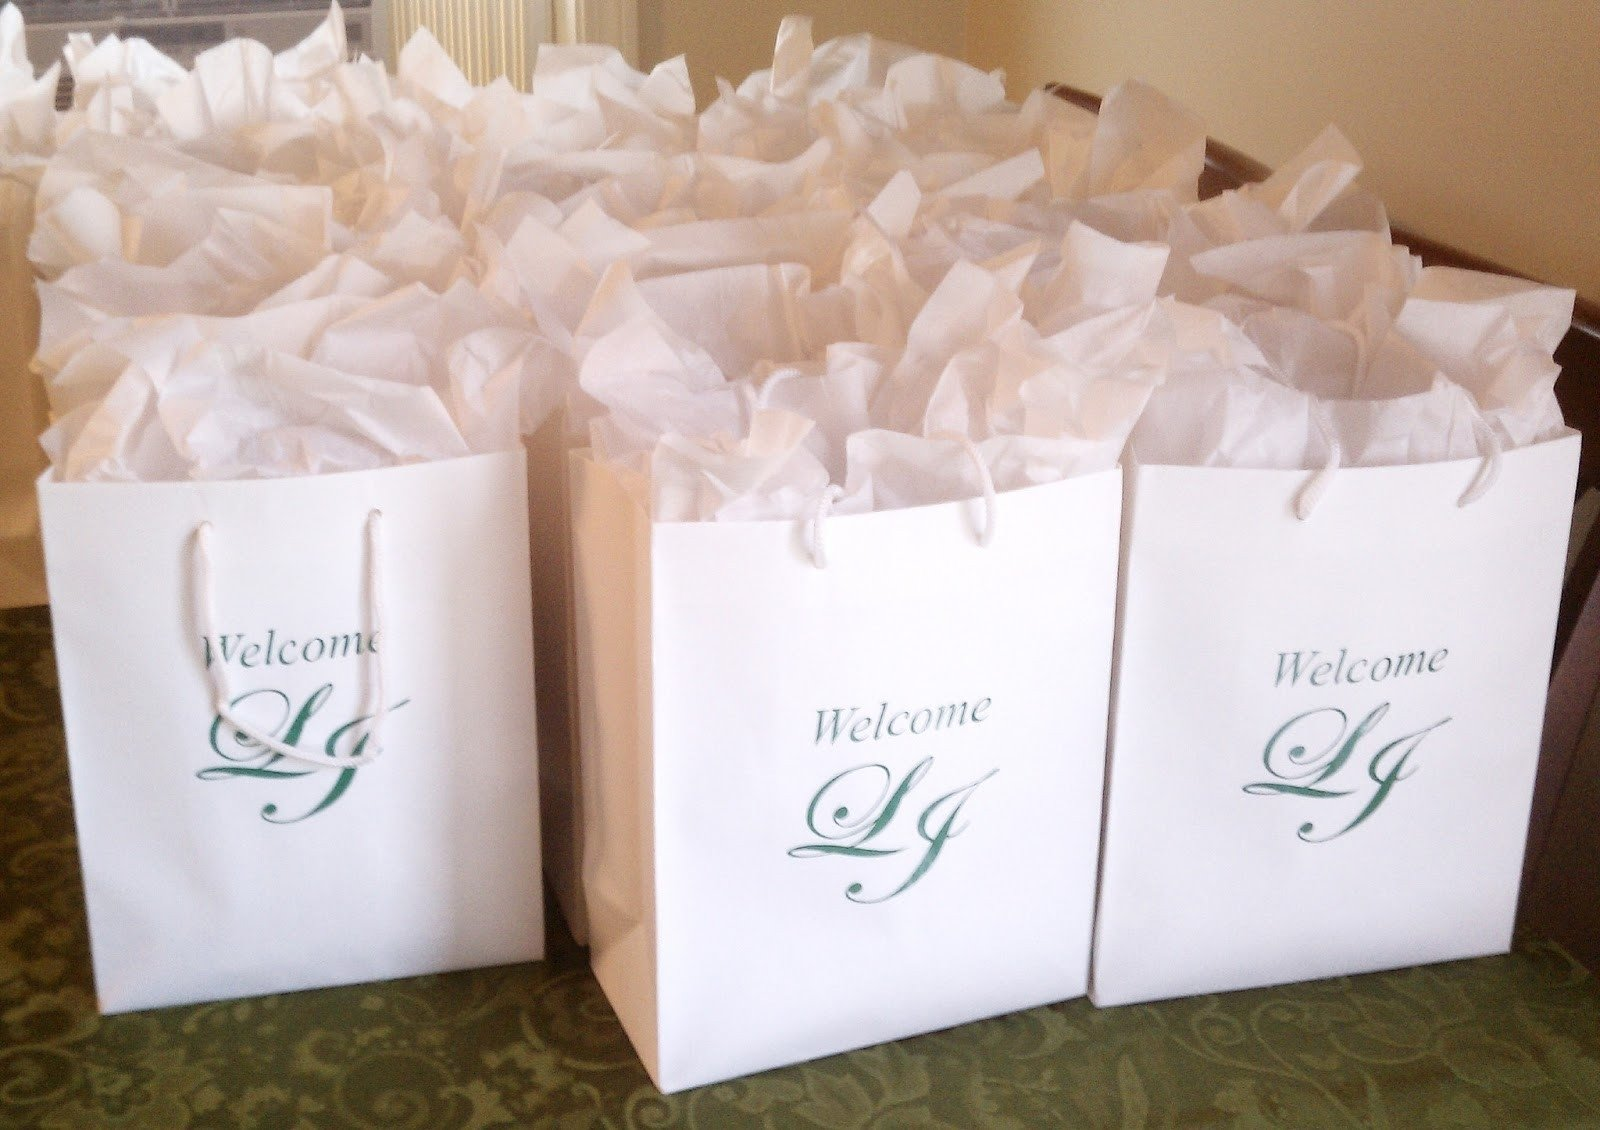 10 Fantastic Ideas For Wedding Welcome Bags wedding gift bags ideas spectacular 44 welcome for hotel guests 9 2021